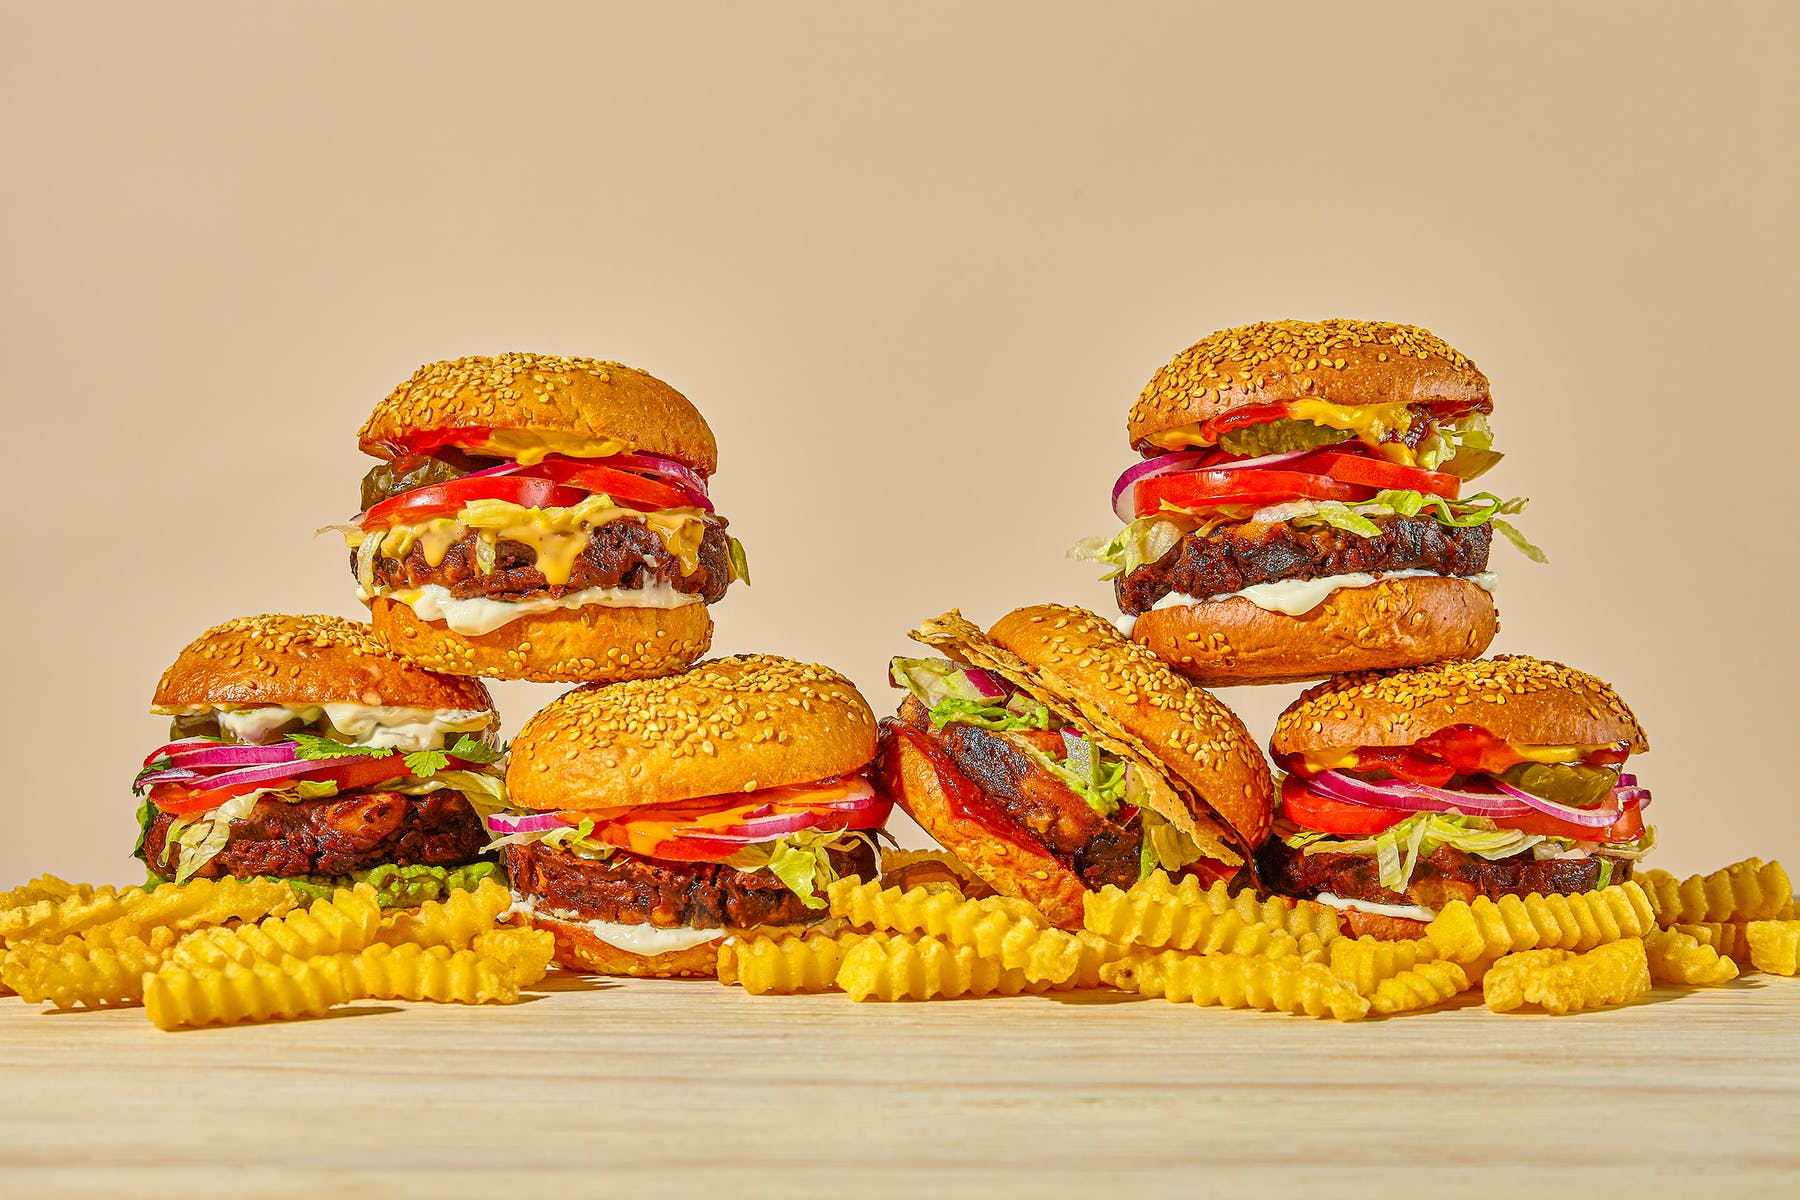 a pile of burgers and fries